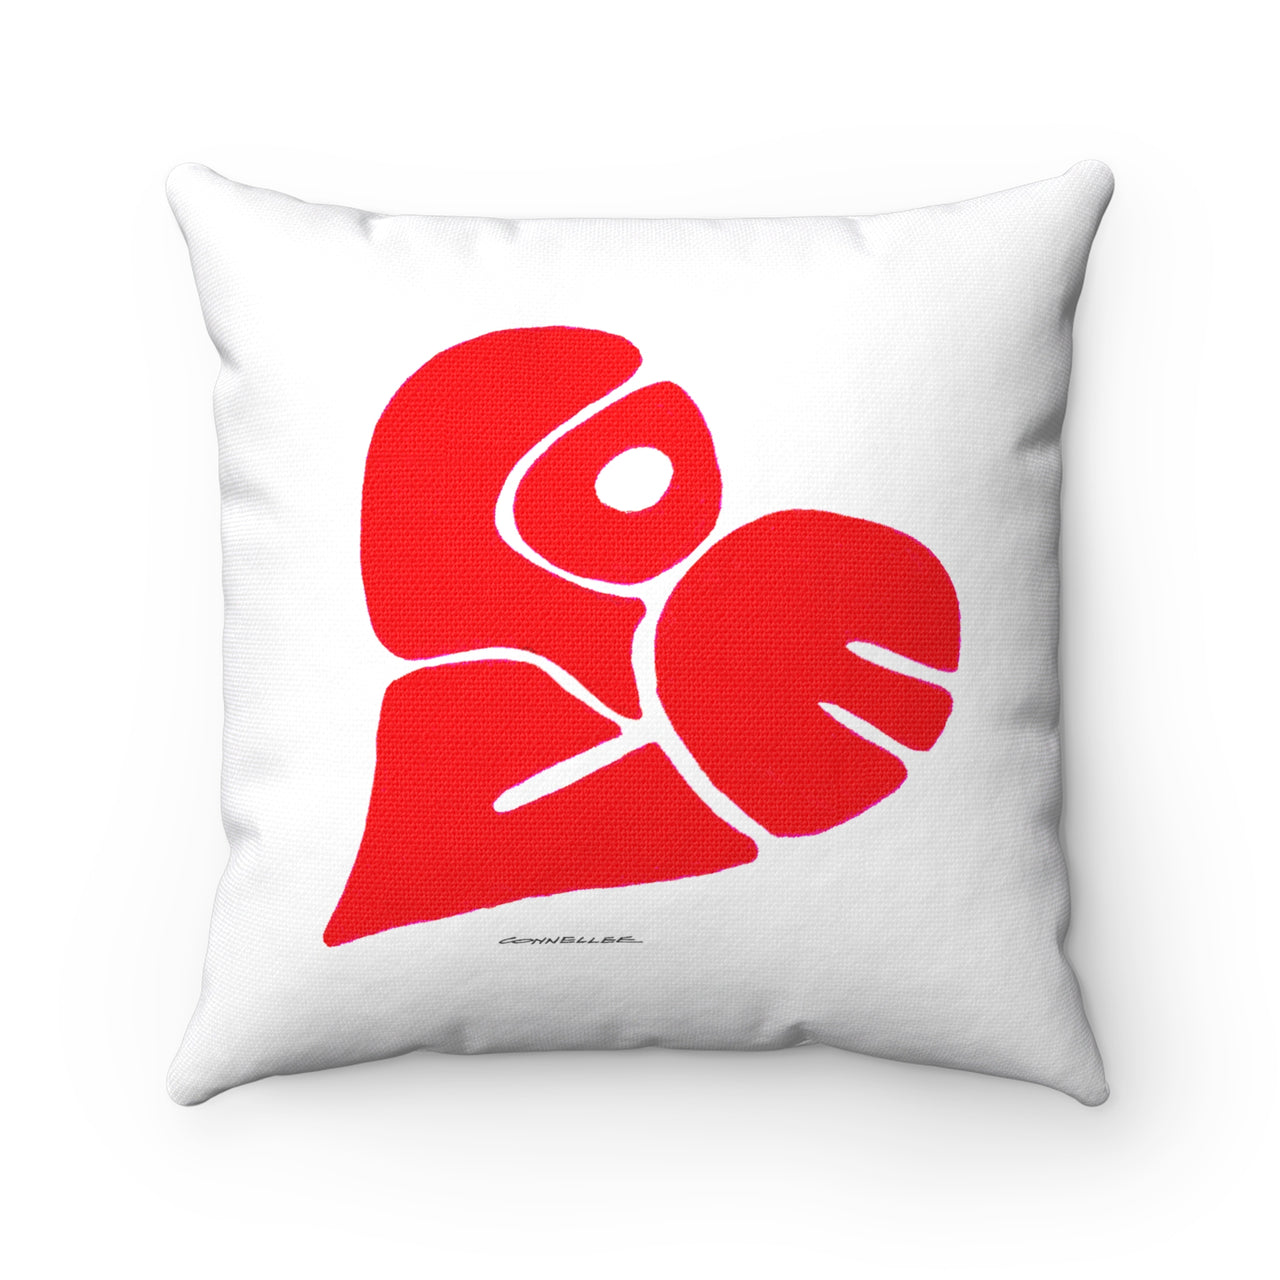 Pillow- White Love Heart Polyester Square - Falling Leaf Card Co.